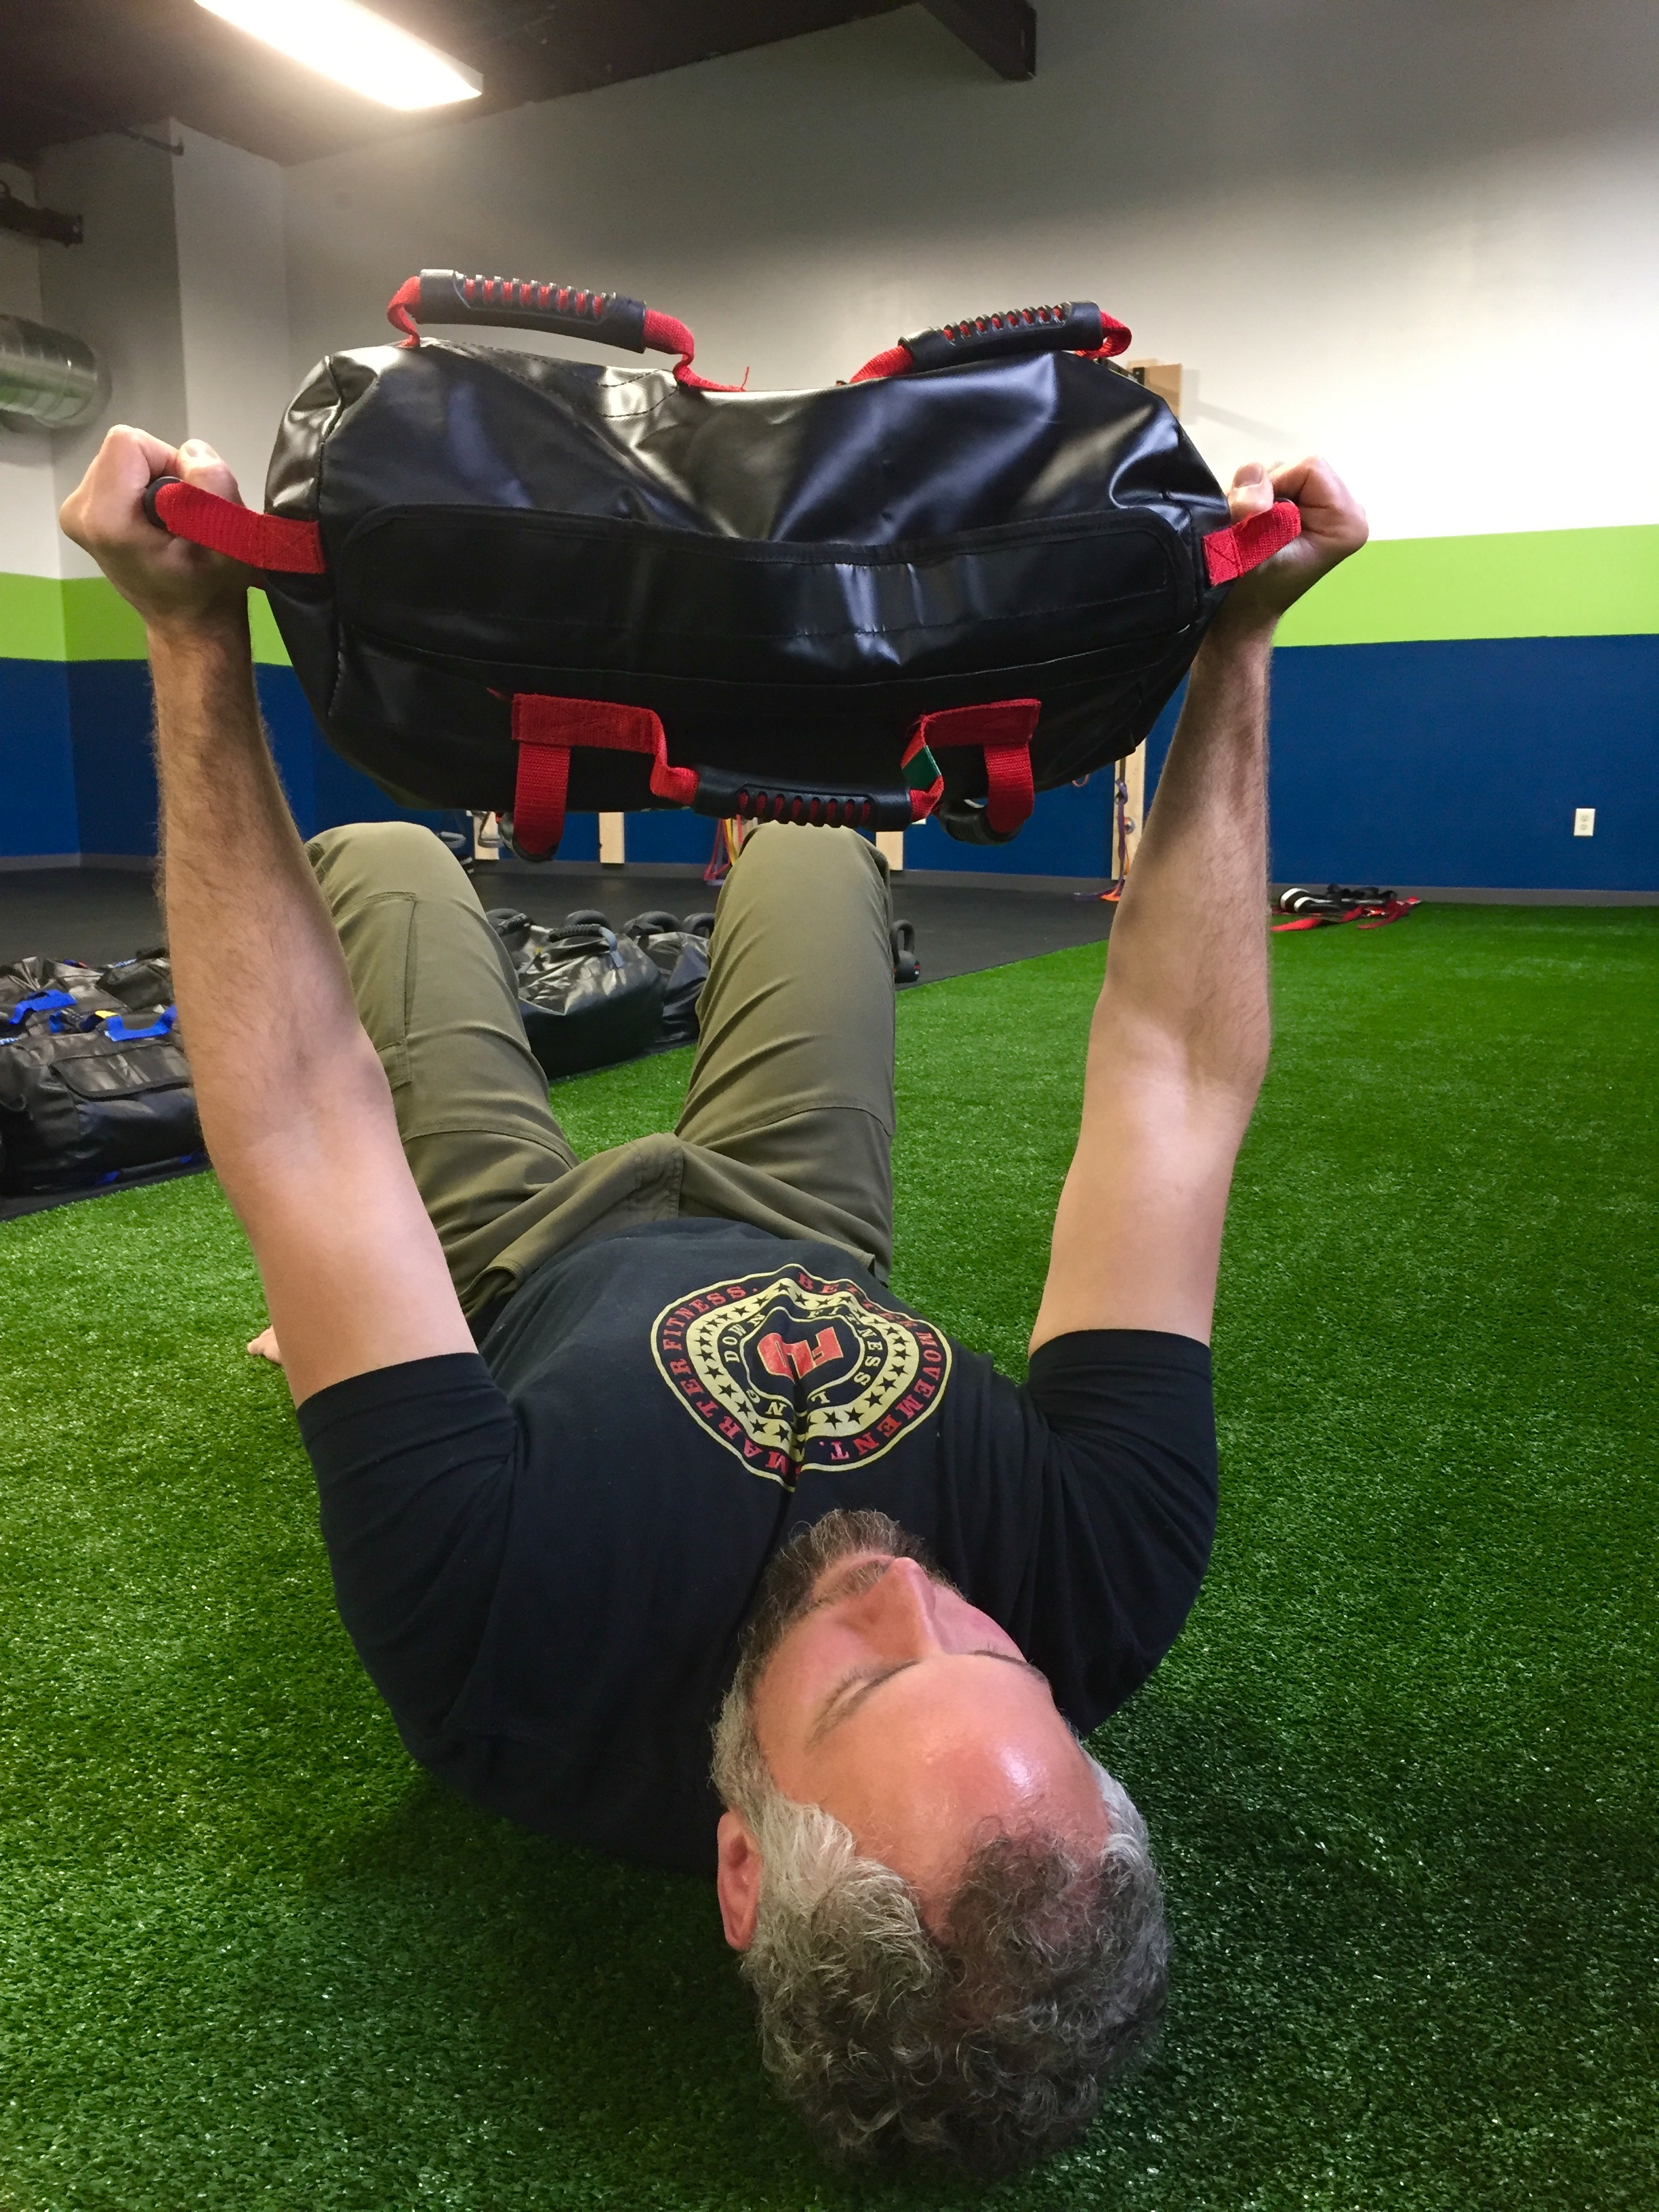 sandbag glute bridge